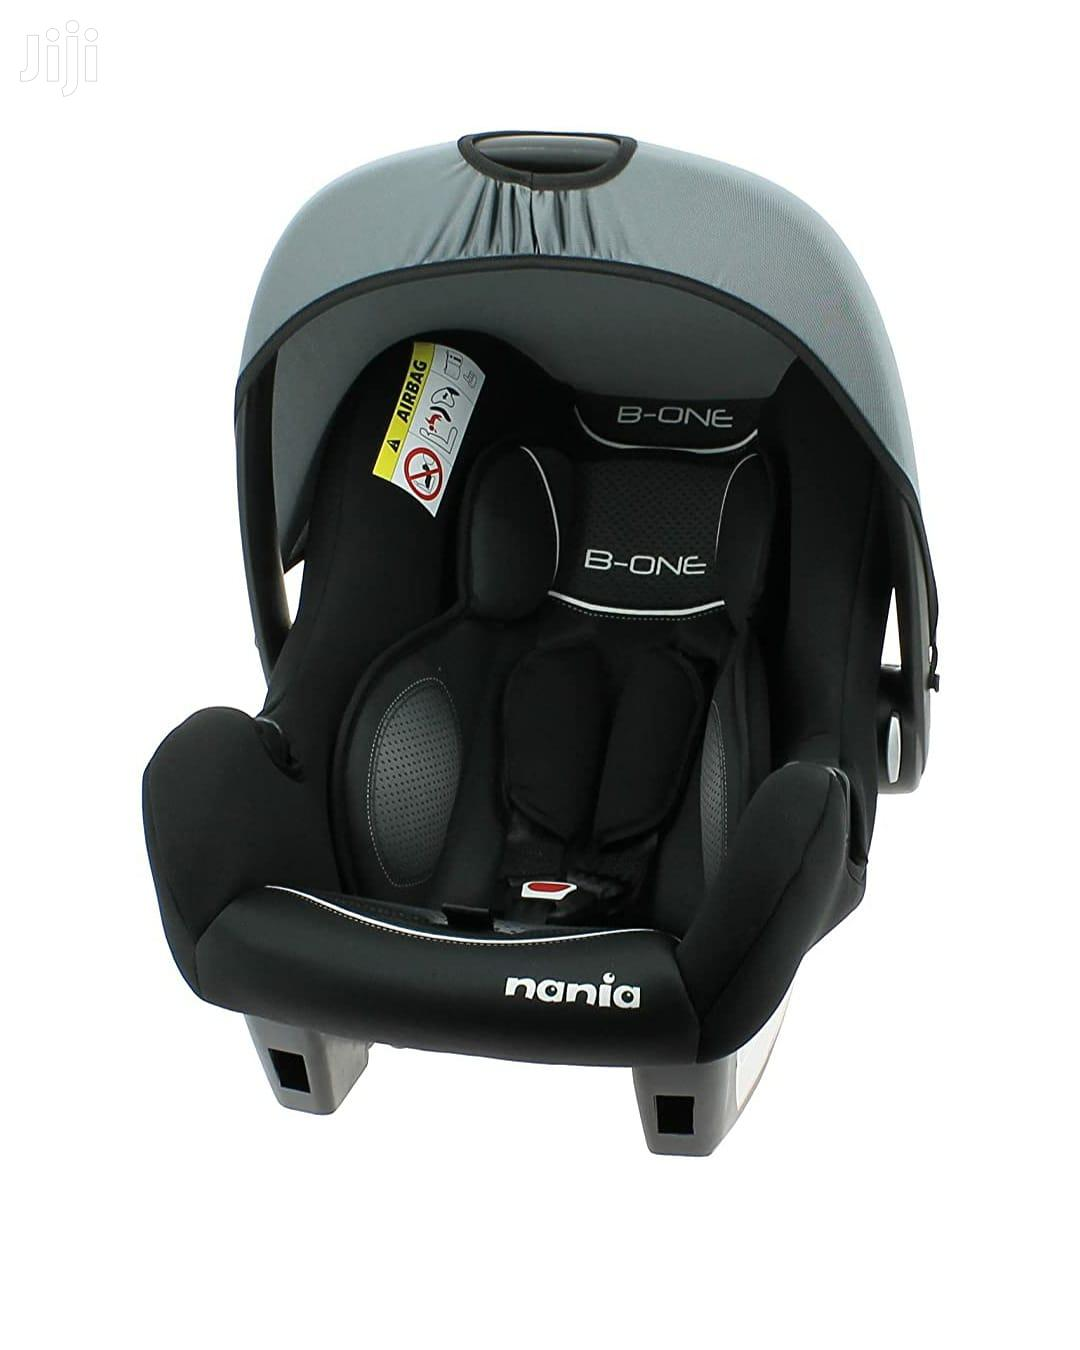 Archive: Beone Infant Car Seat